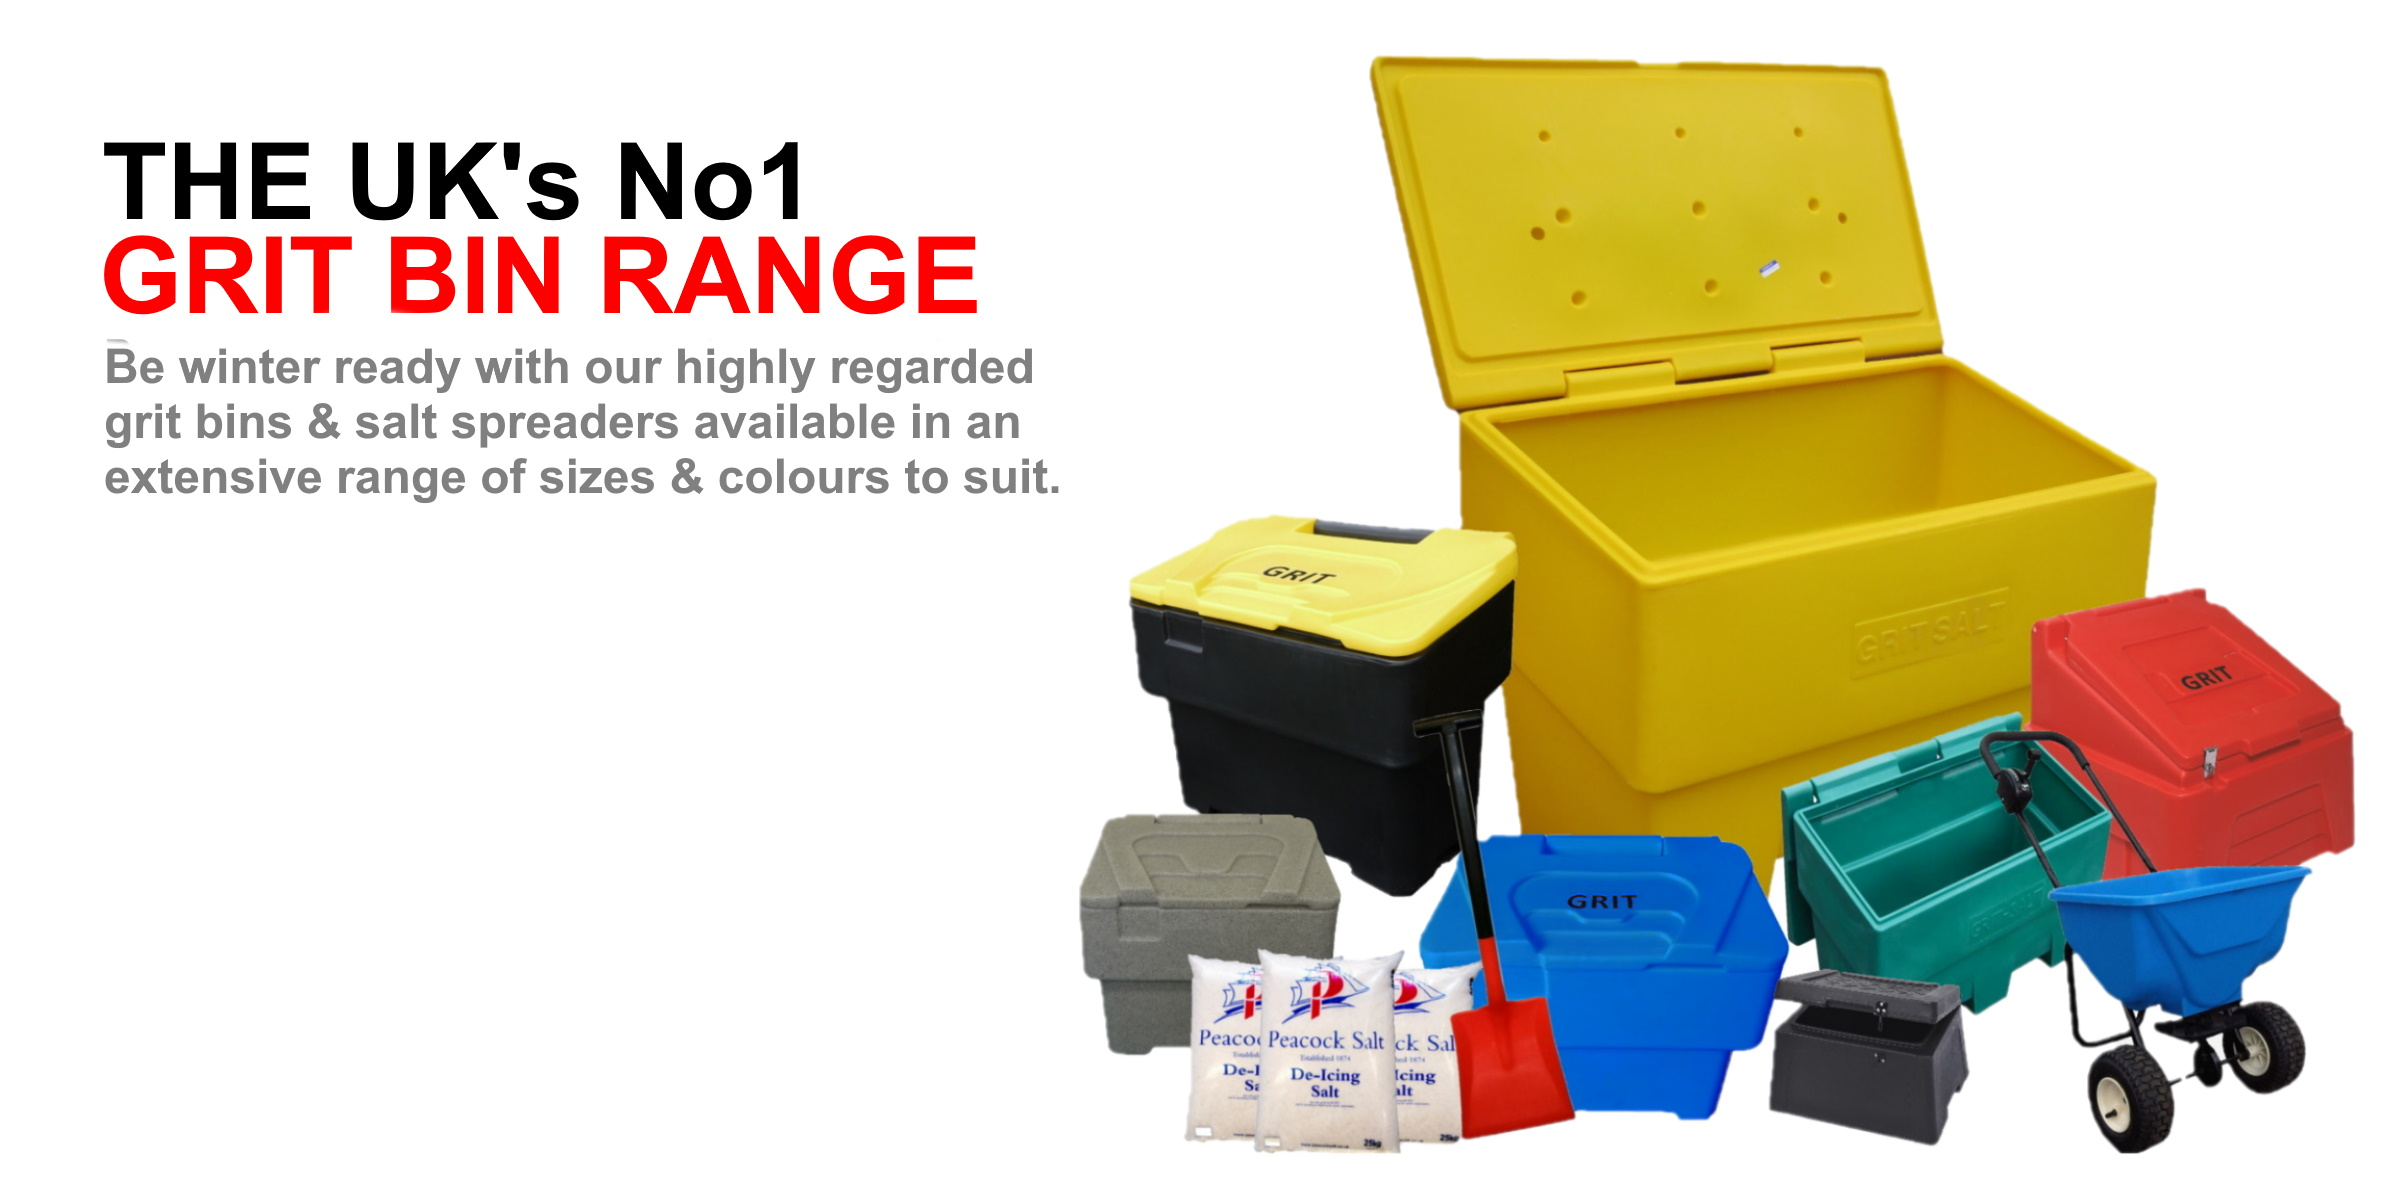 The UKs No1 grit bin range